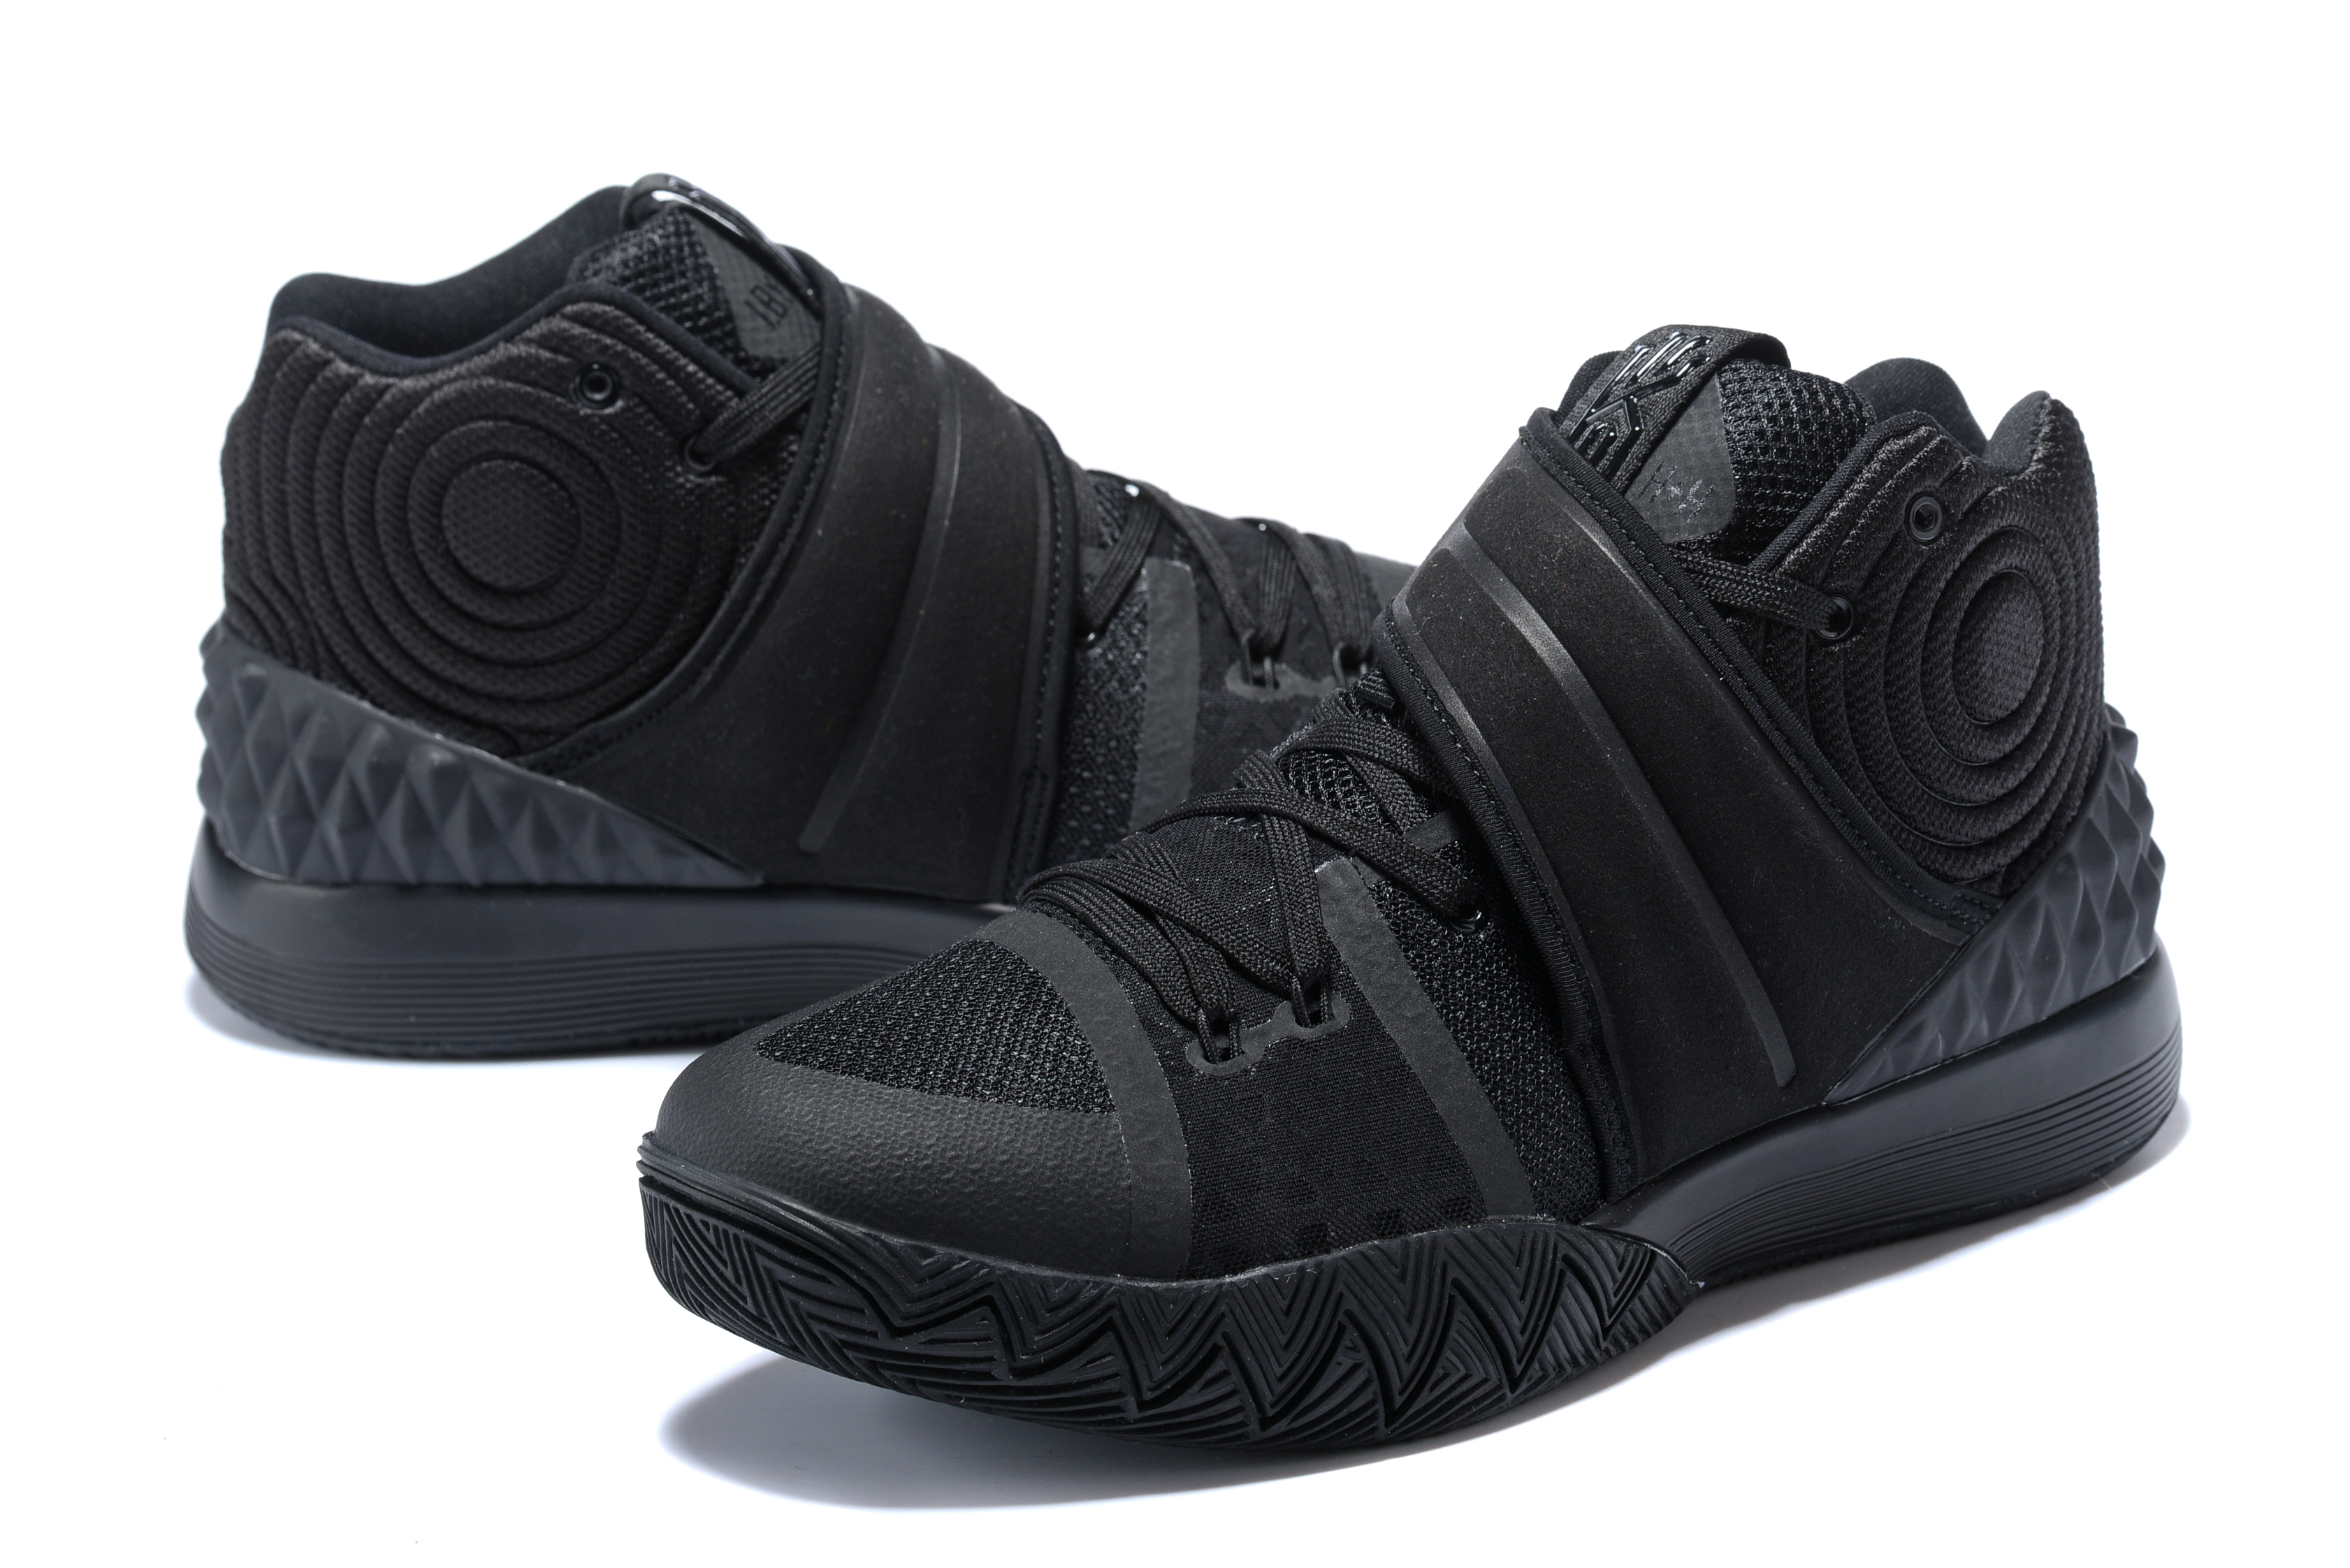 Nike Kyrie S1HYBRID All Black Shoes